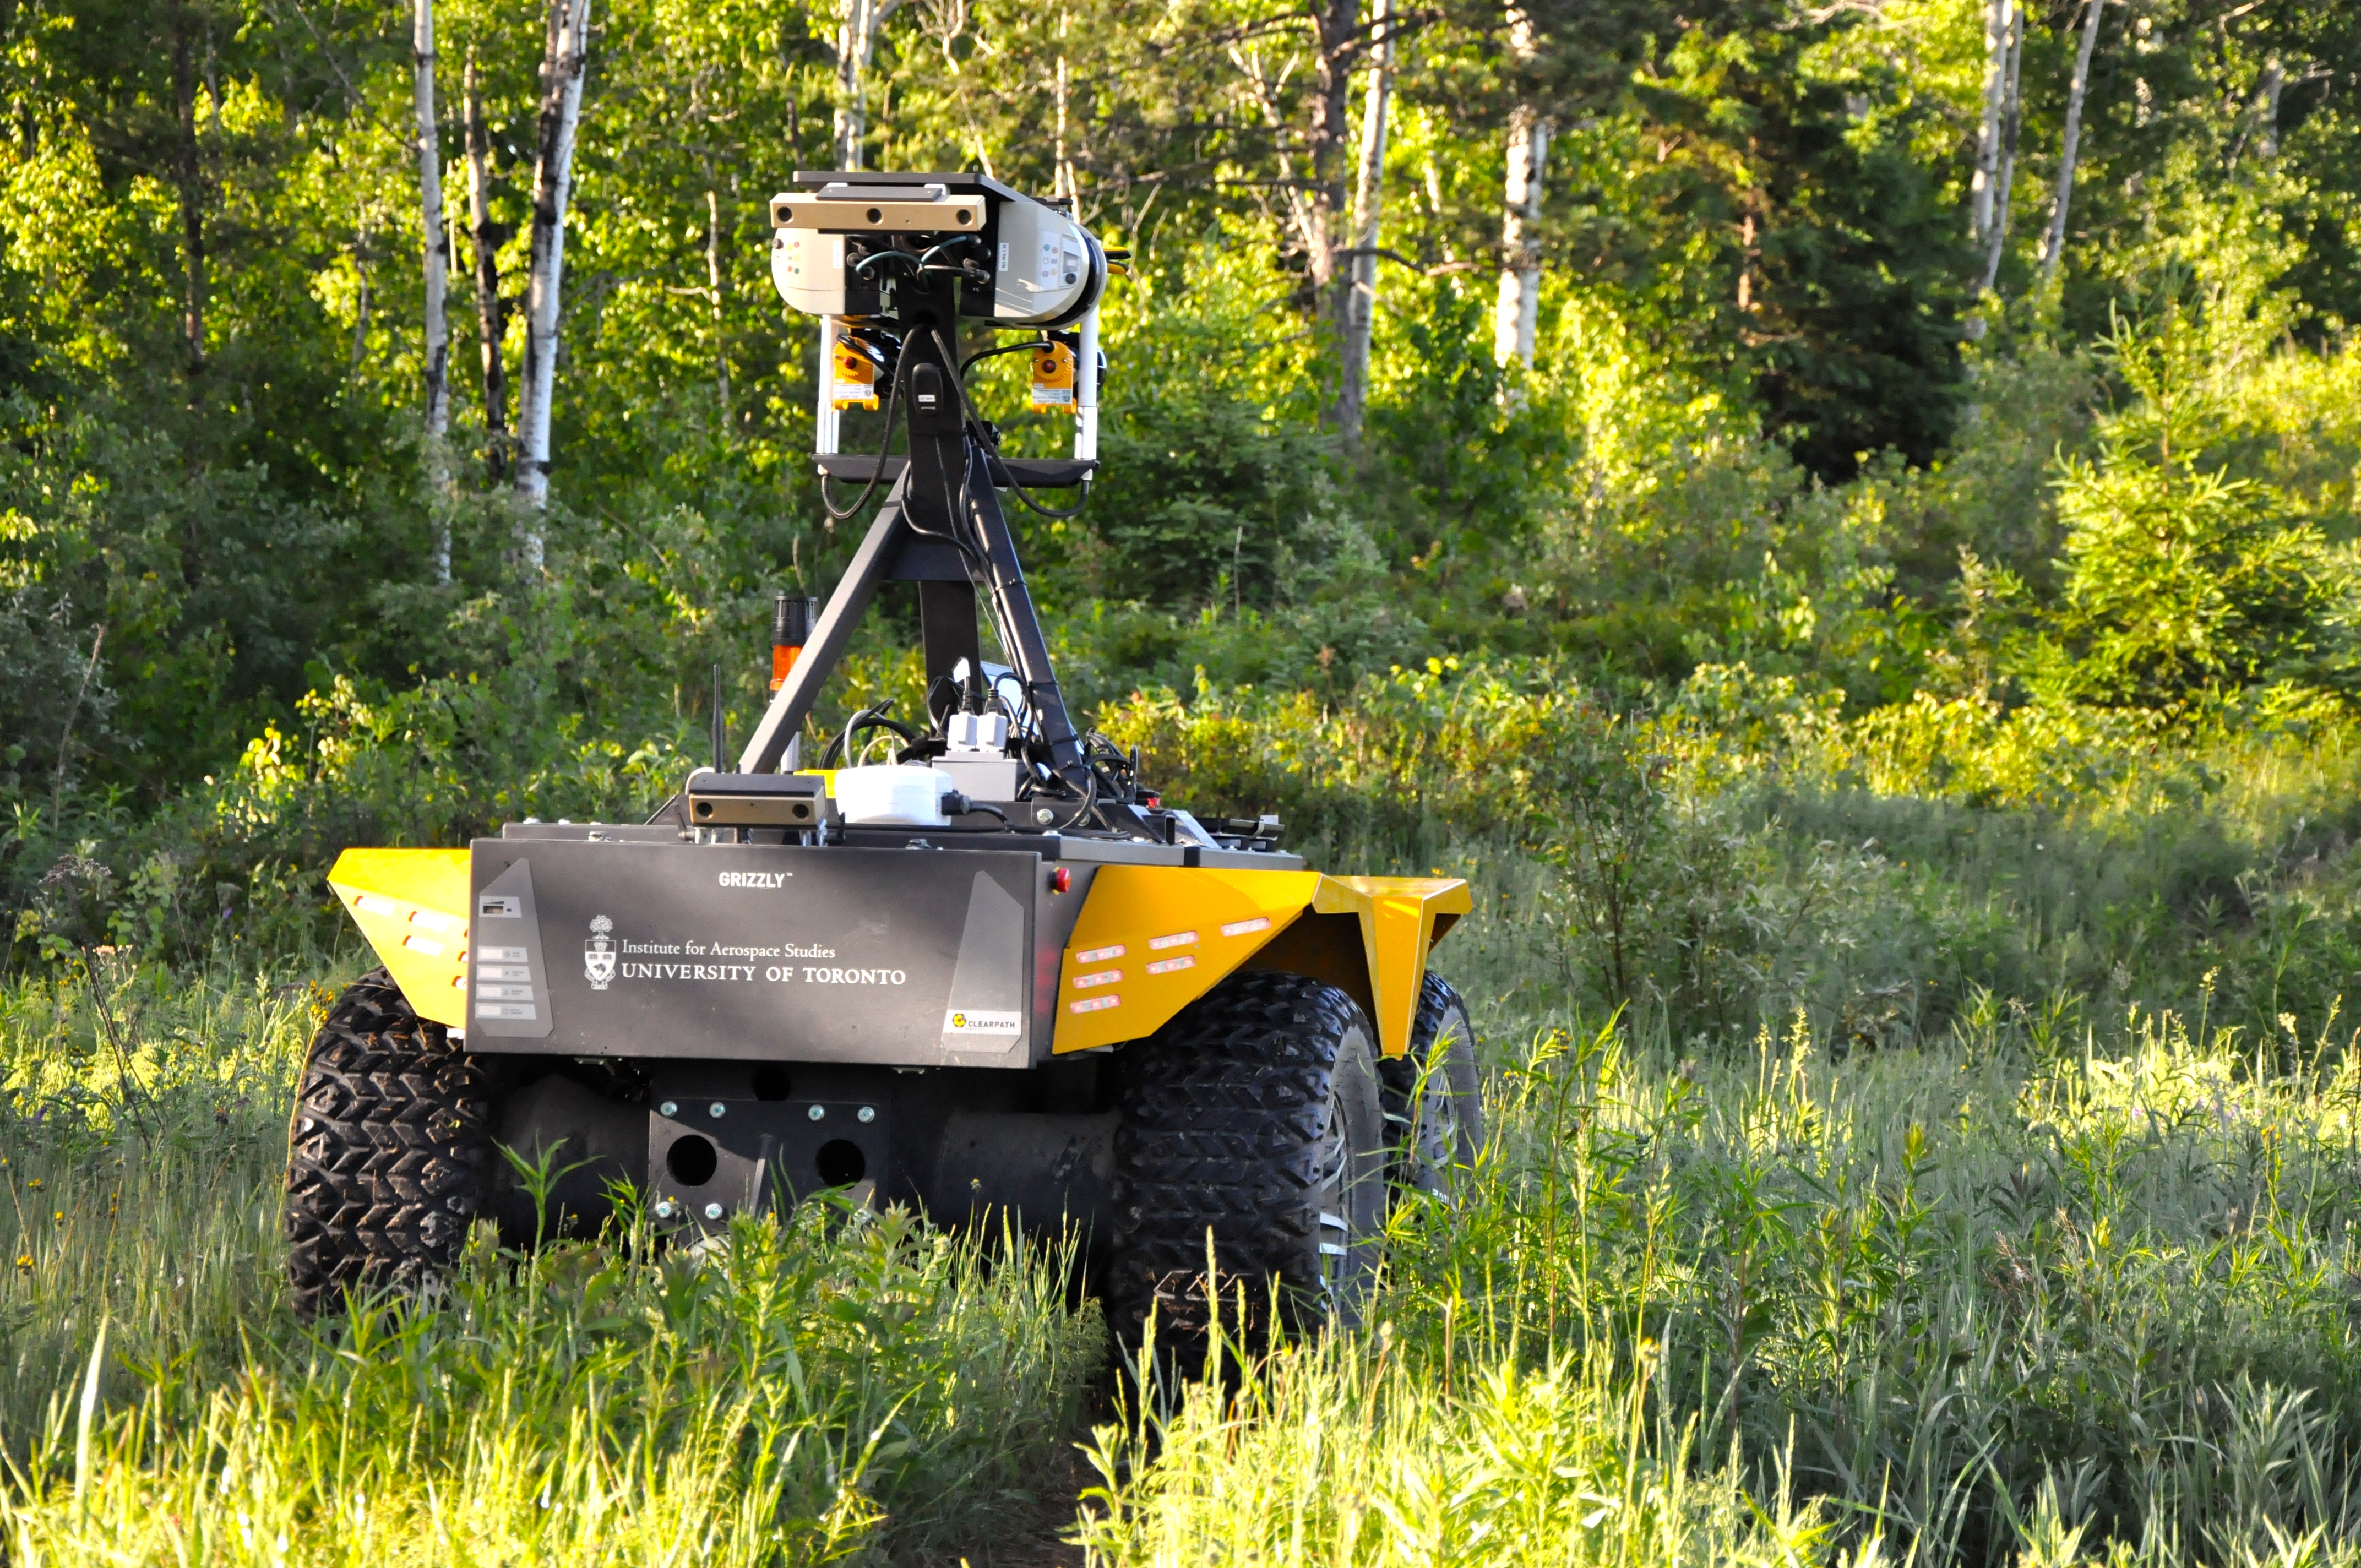 Black Yellow Grizzly Robot with Cameras in grass